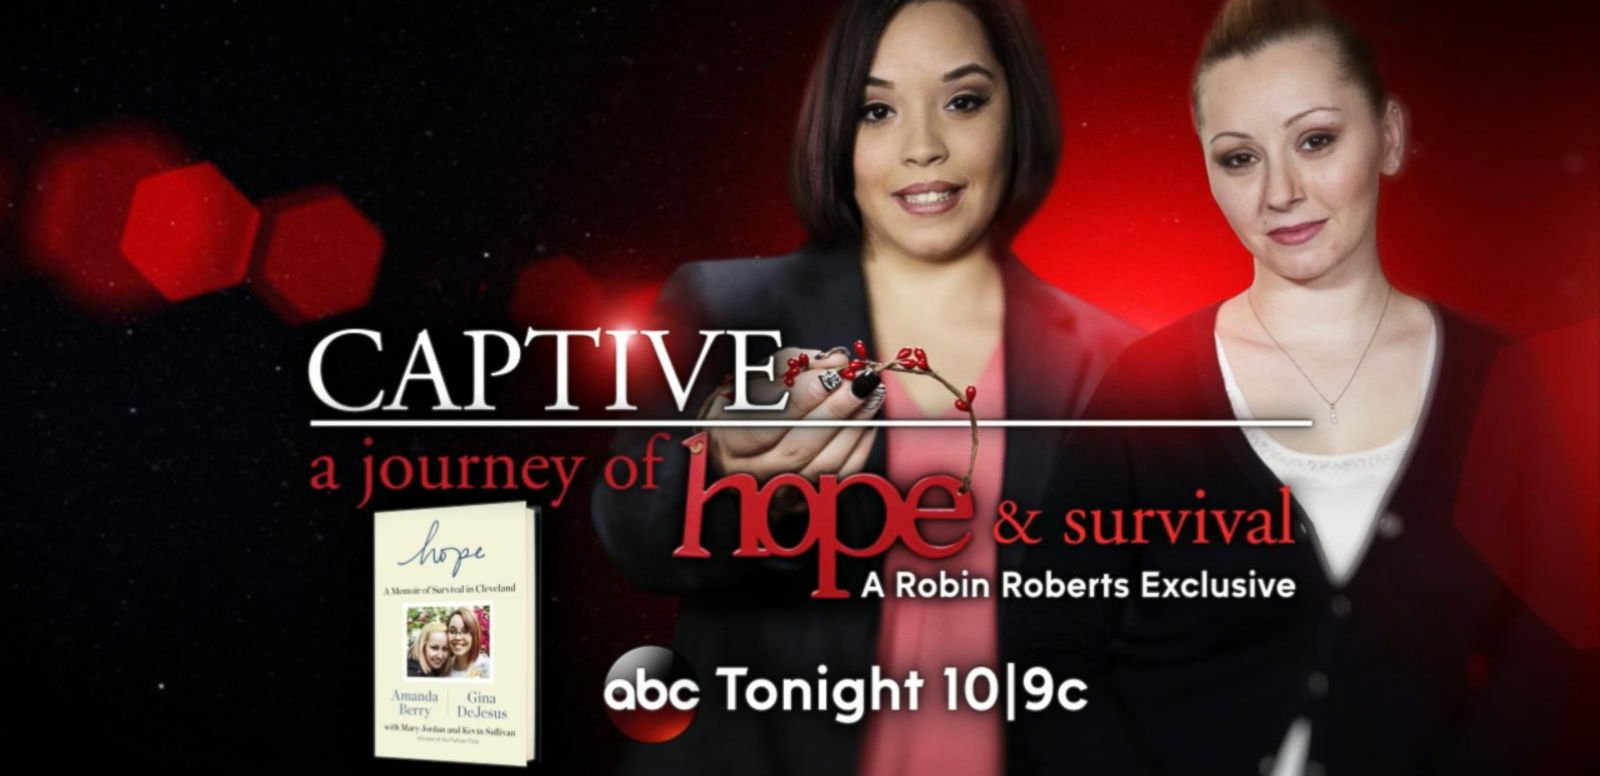 VIDEO: Amanda Berry, Gina DeJesus on Their Improbable Survival Story